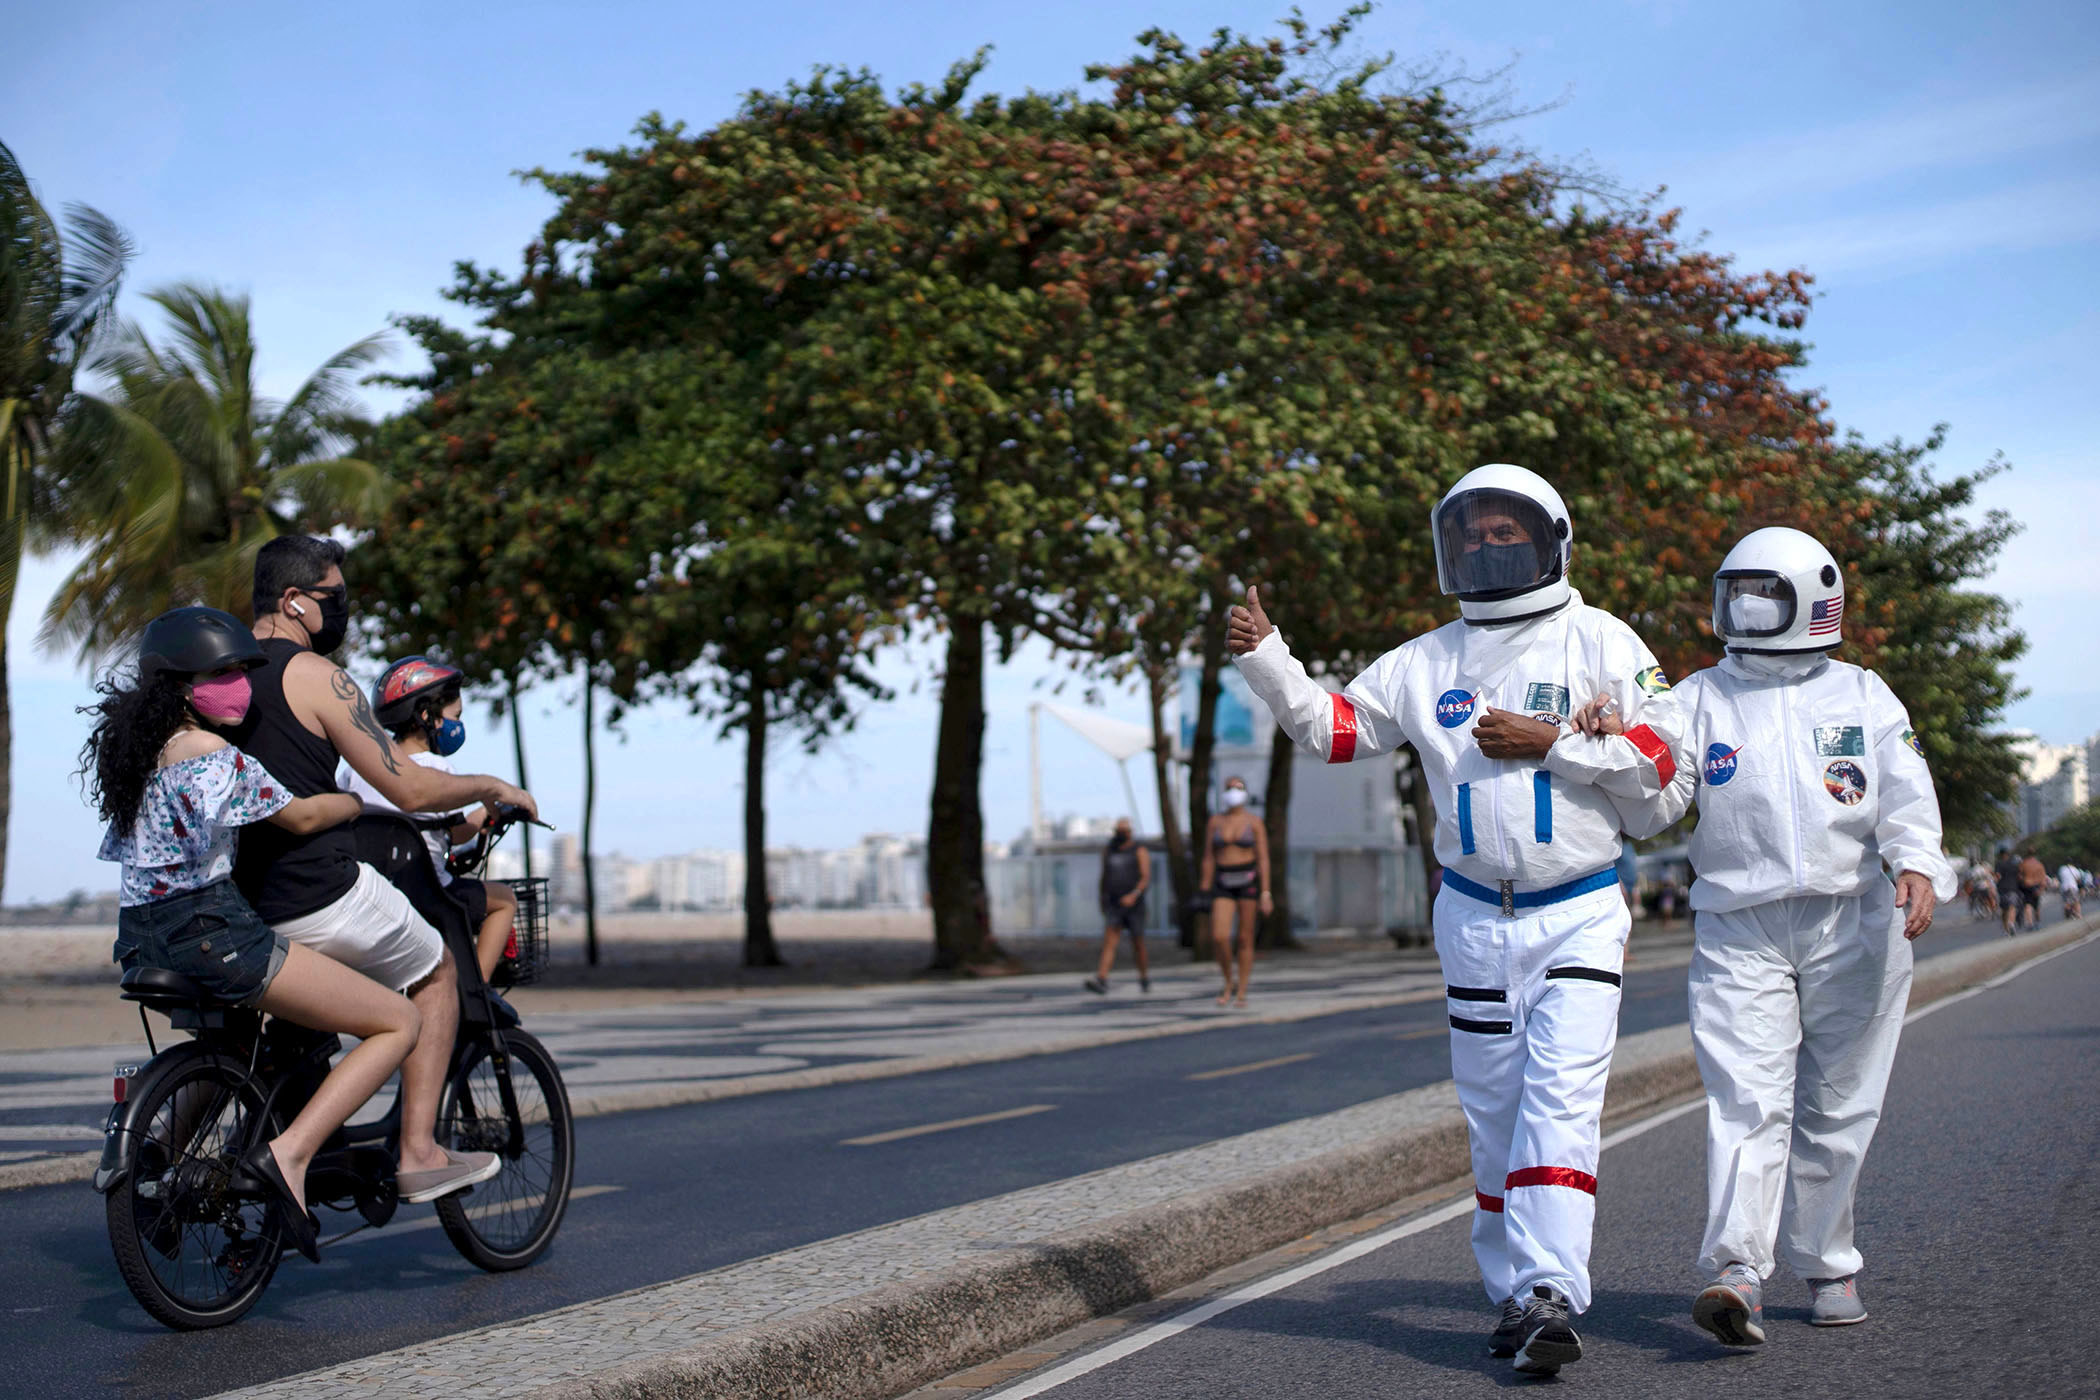 A man and woman wear spacesuits and face masks; the man gives a thumbs up to three people wearing face masks on a bicycle